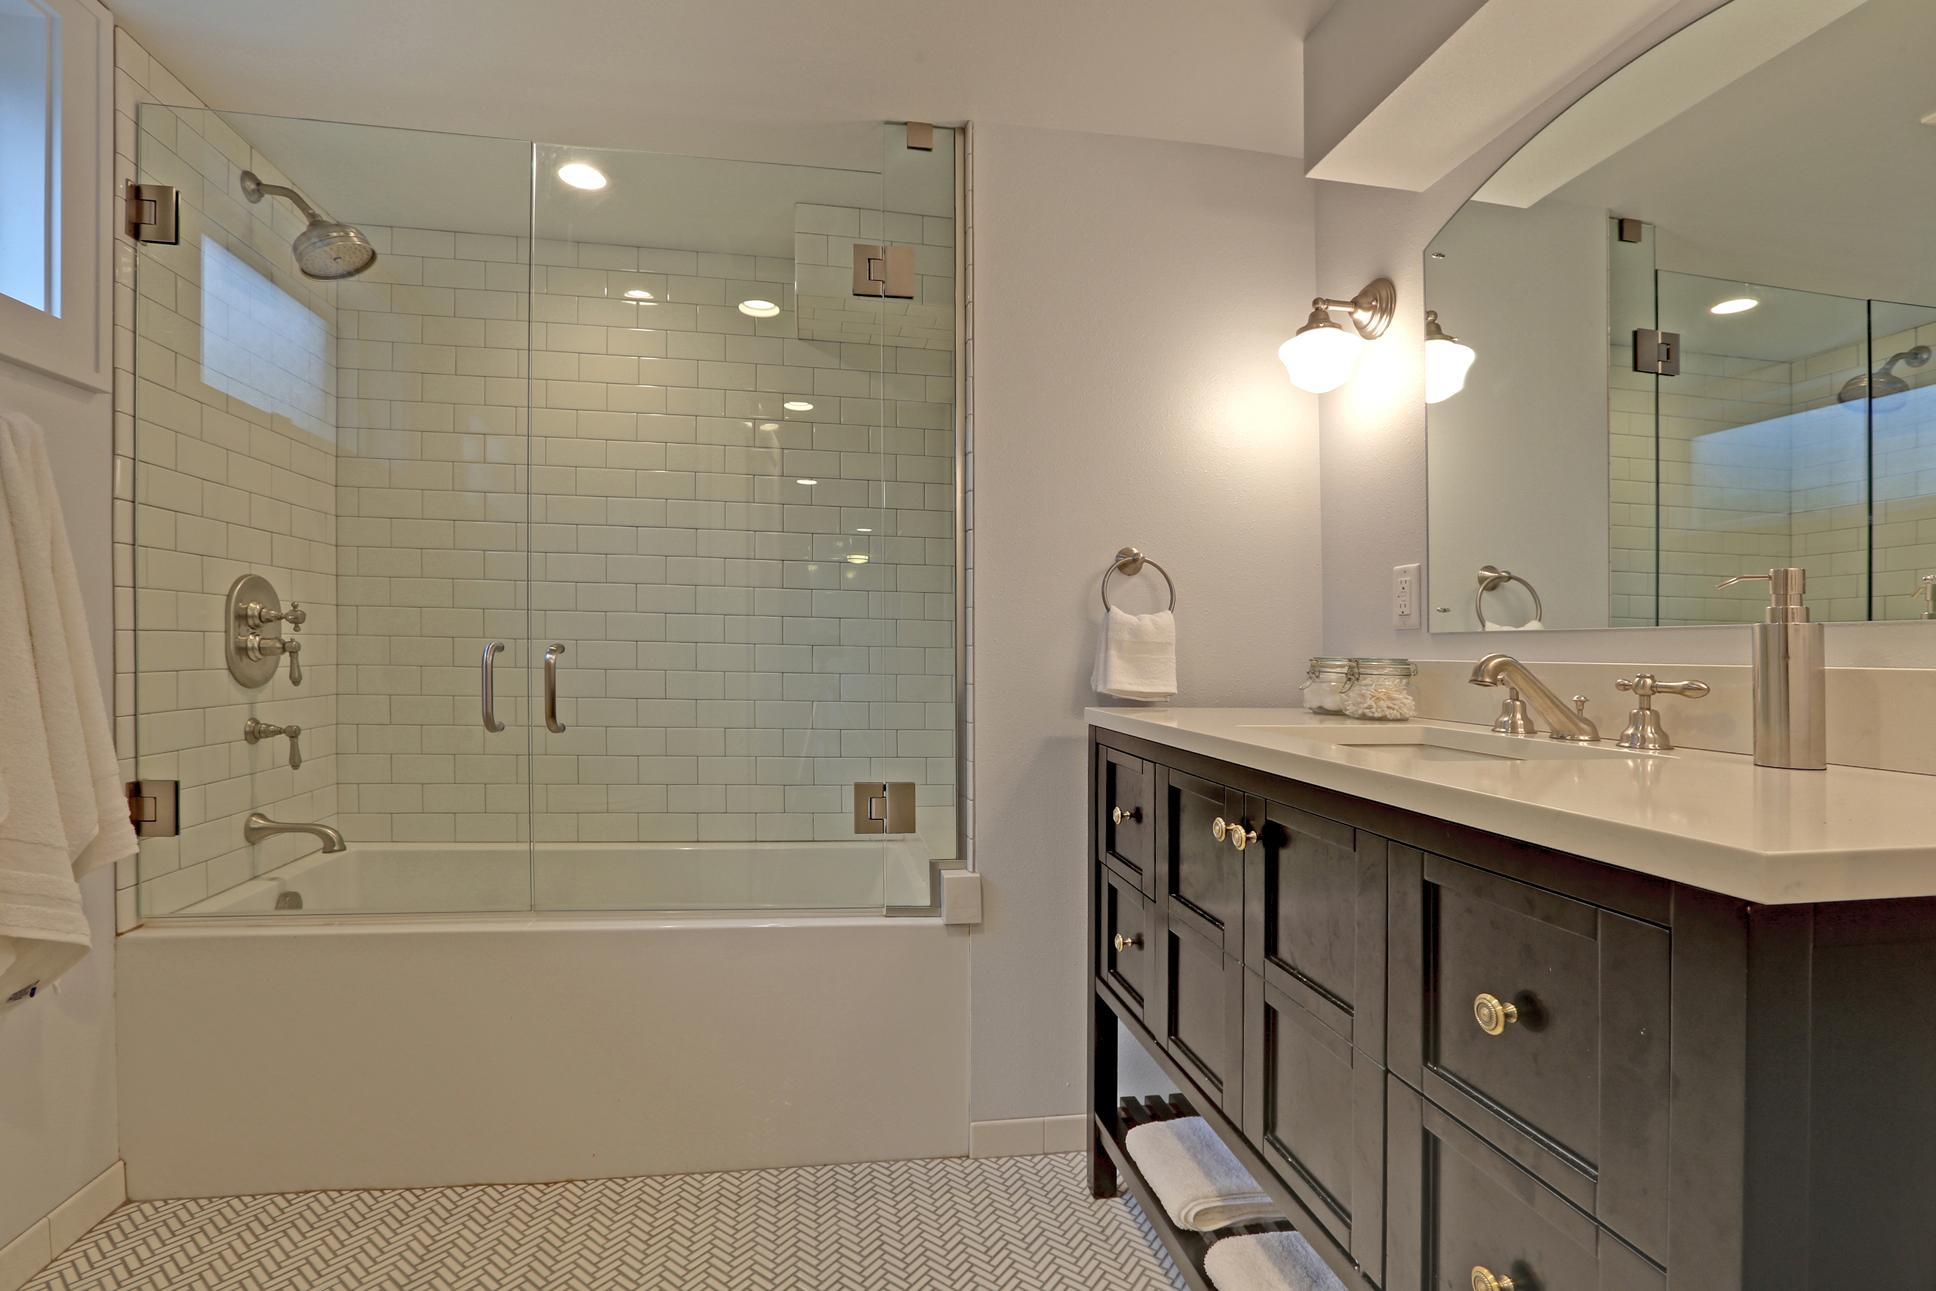 Radiant-heat herringbone Ann Sacks tile in the bathroom, Rohl fixtures, and a deep soaking tub create a destination and spa-like environment in the new bathroom.